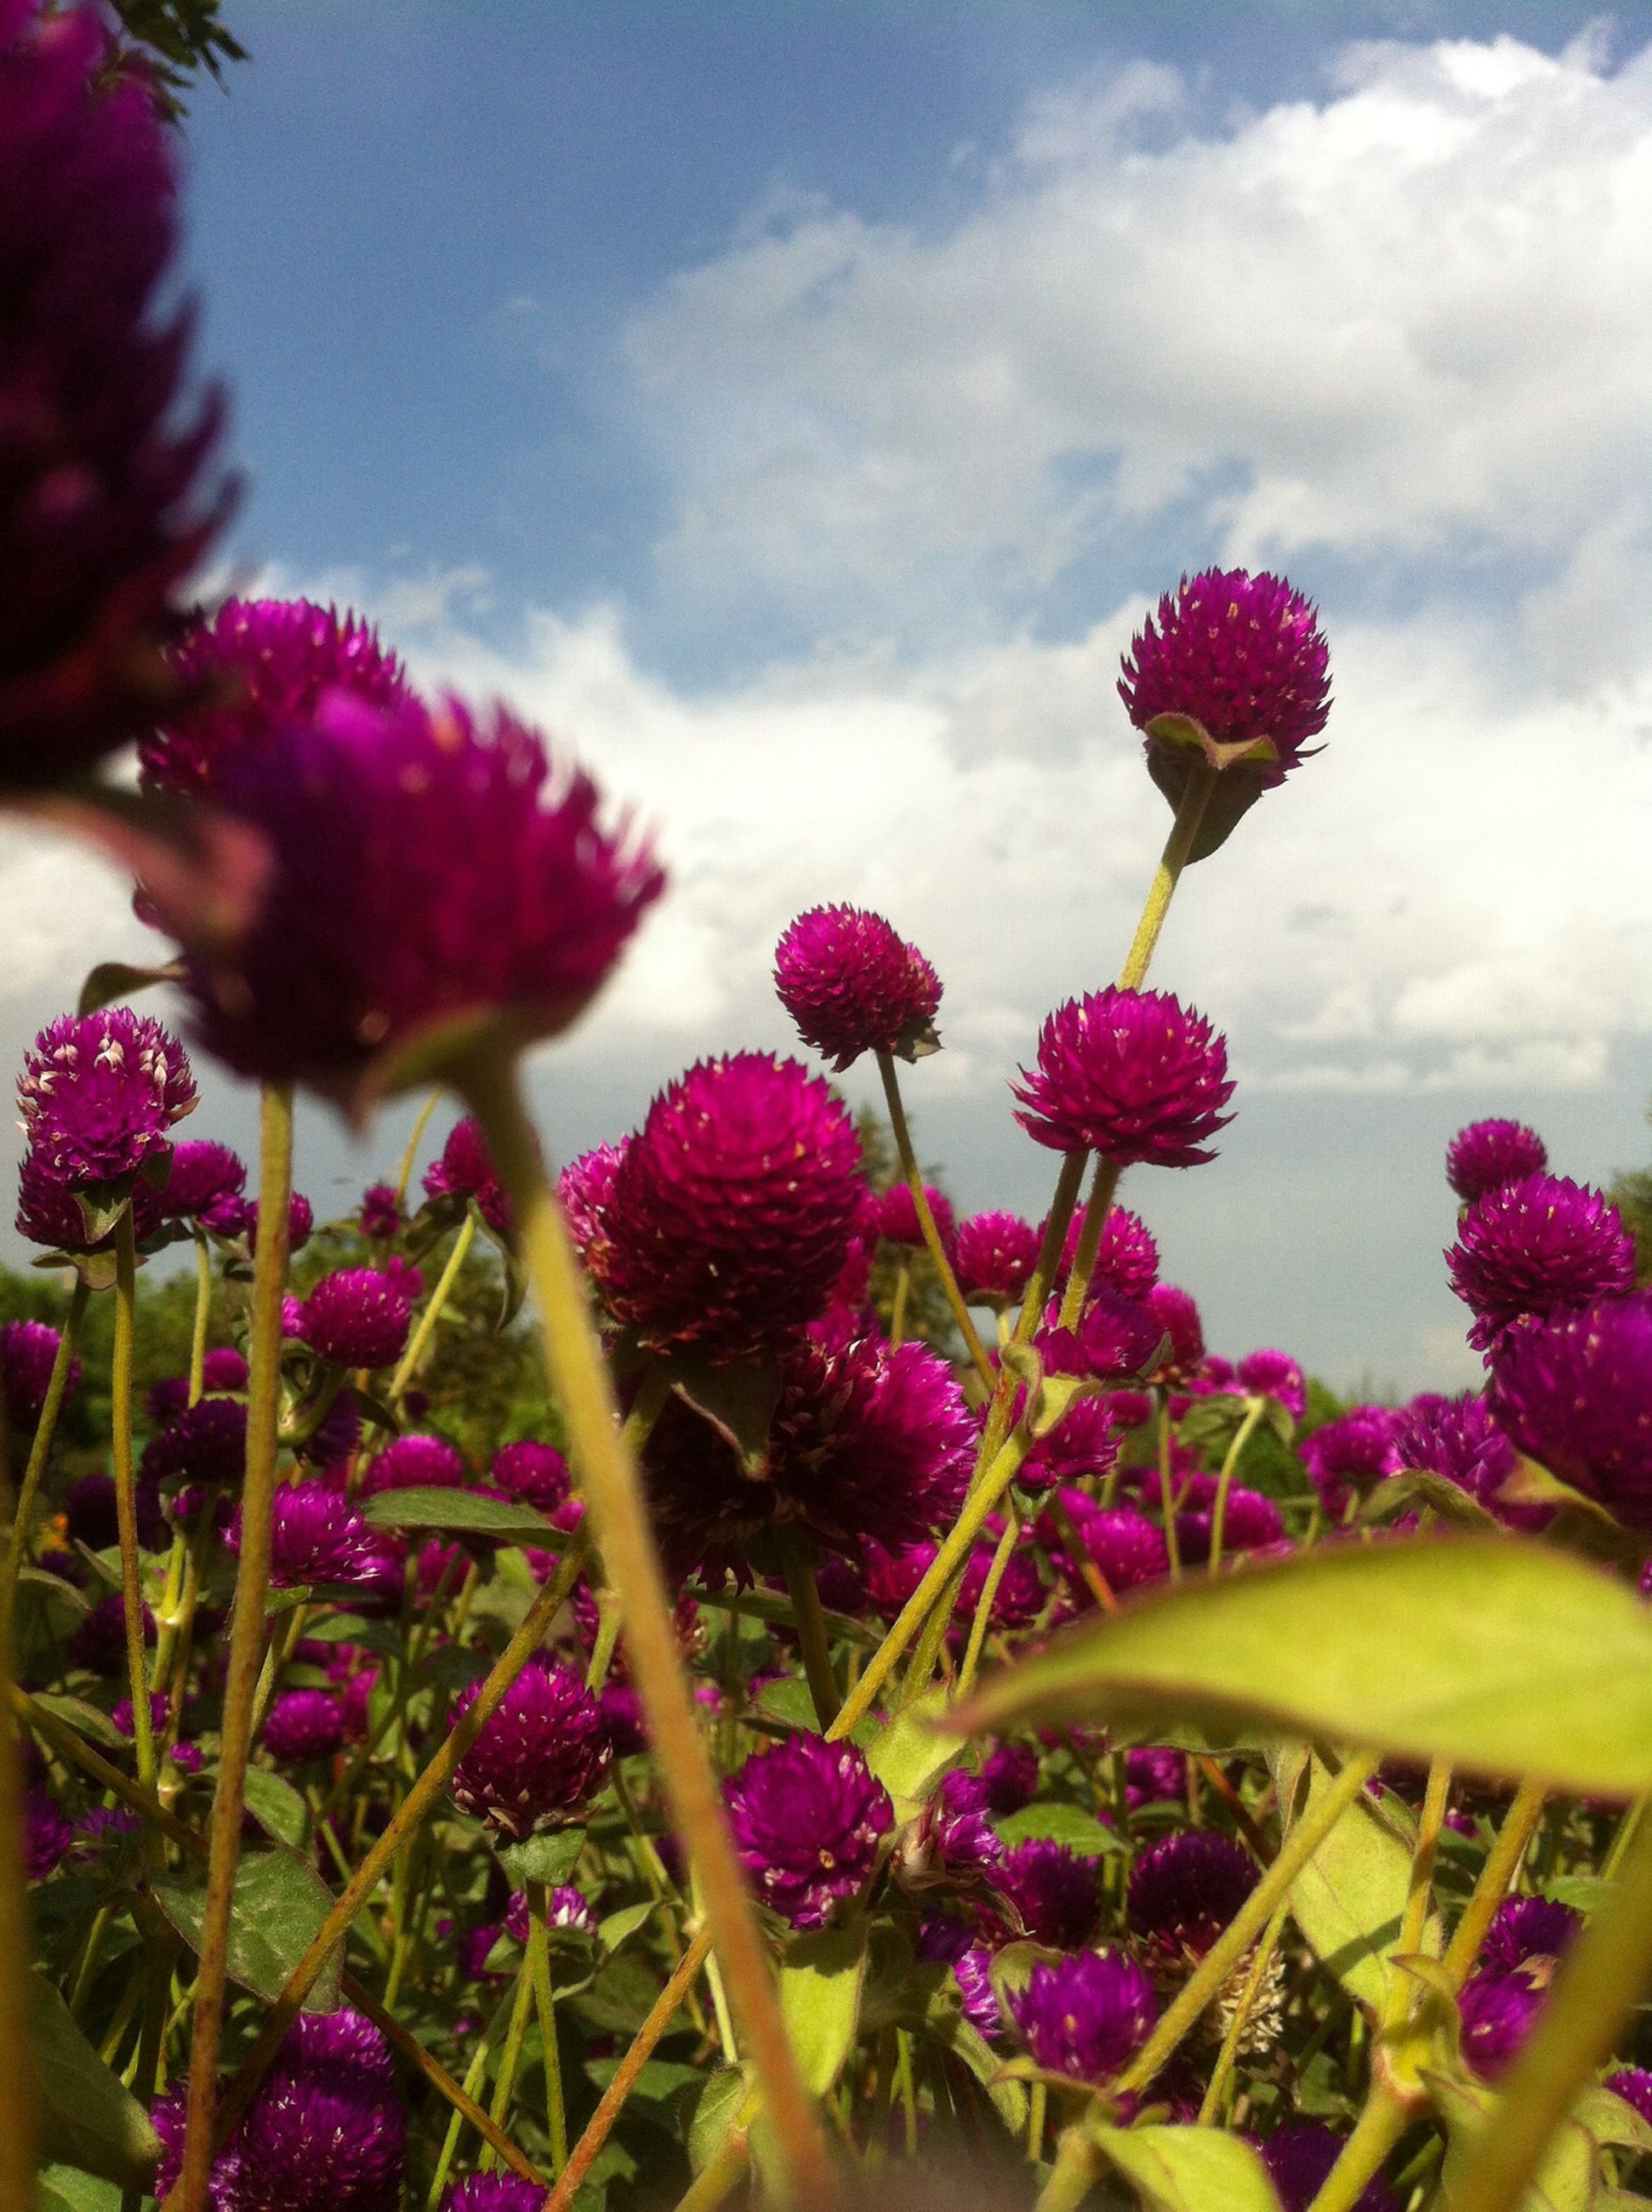 flower, freshness, fragility, growth, petal, flower head, beauty in nature, pink color, plant, blooming, nature, sky, purple, stem, focus on foreground, close-up, in bloom, cloud - sky, day, outdoors